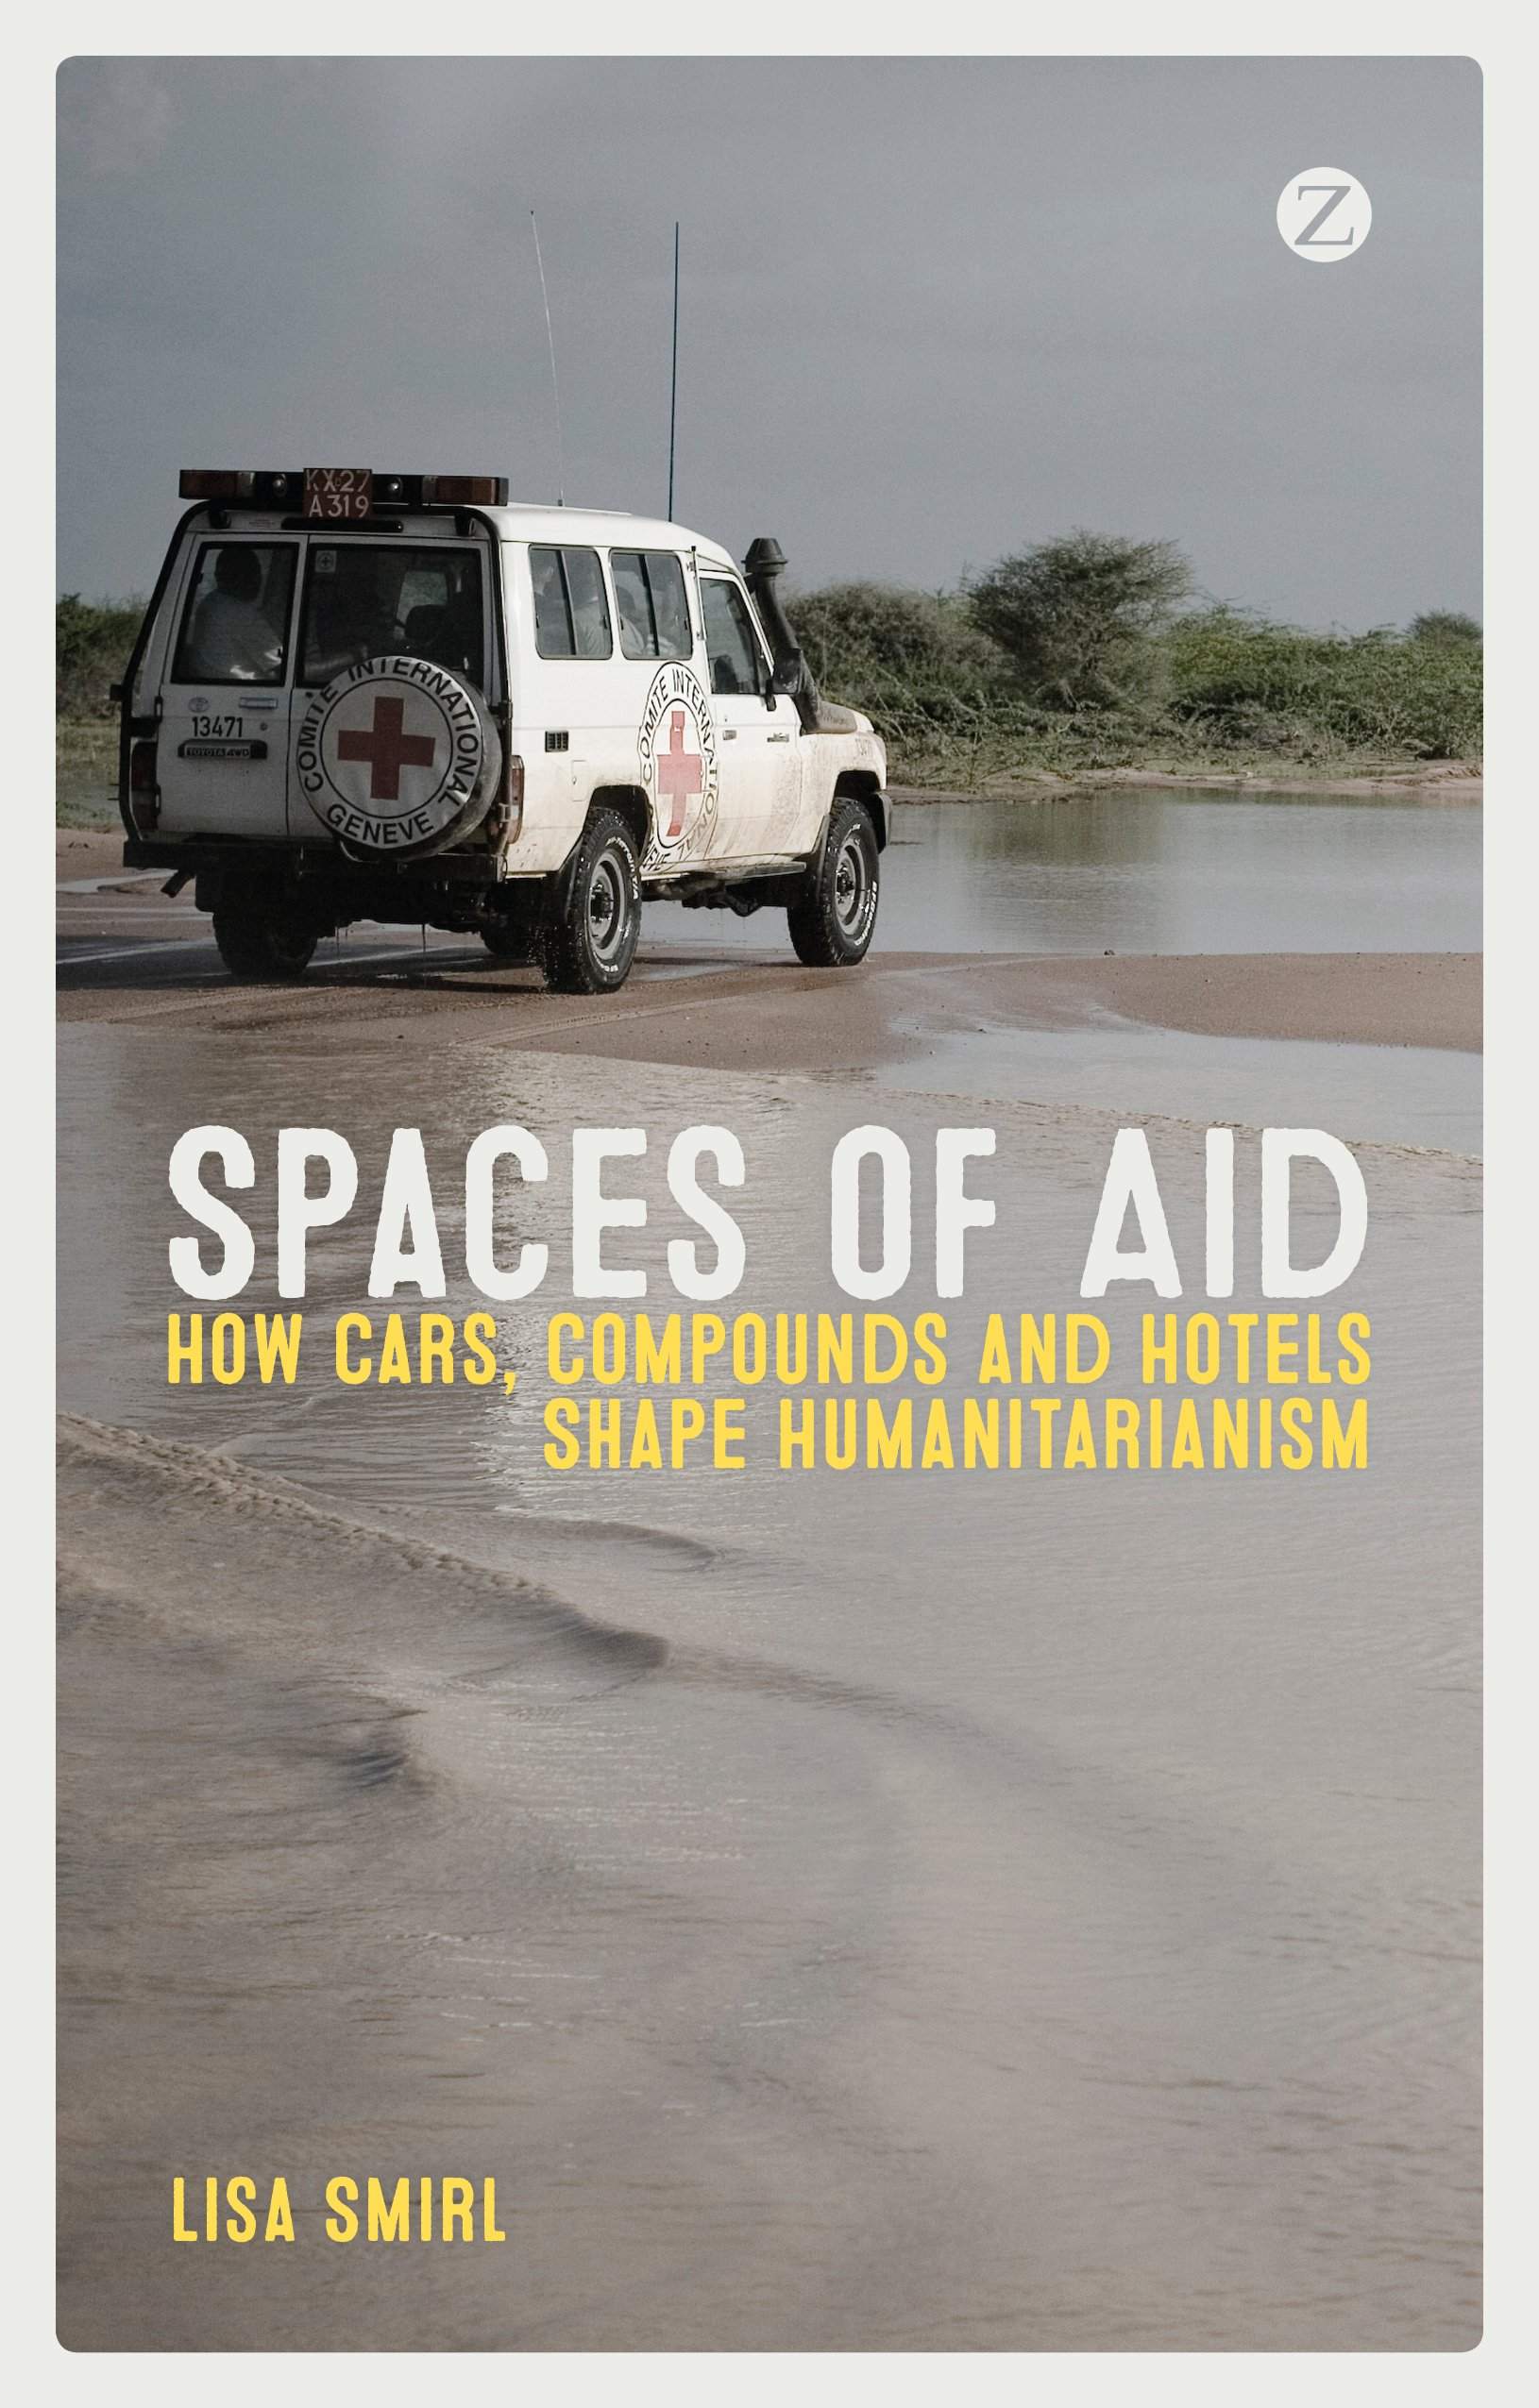 Spaces of Aid: How Cars, Compounds and Hotels Shape Humanitarianism